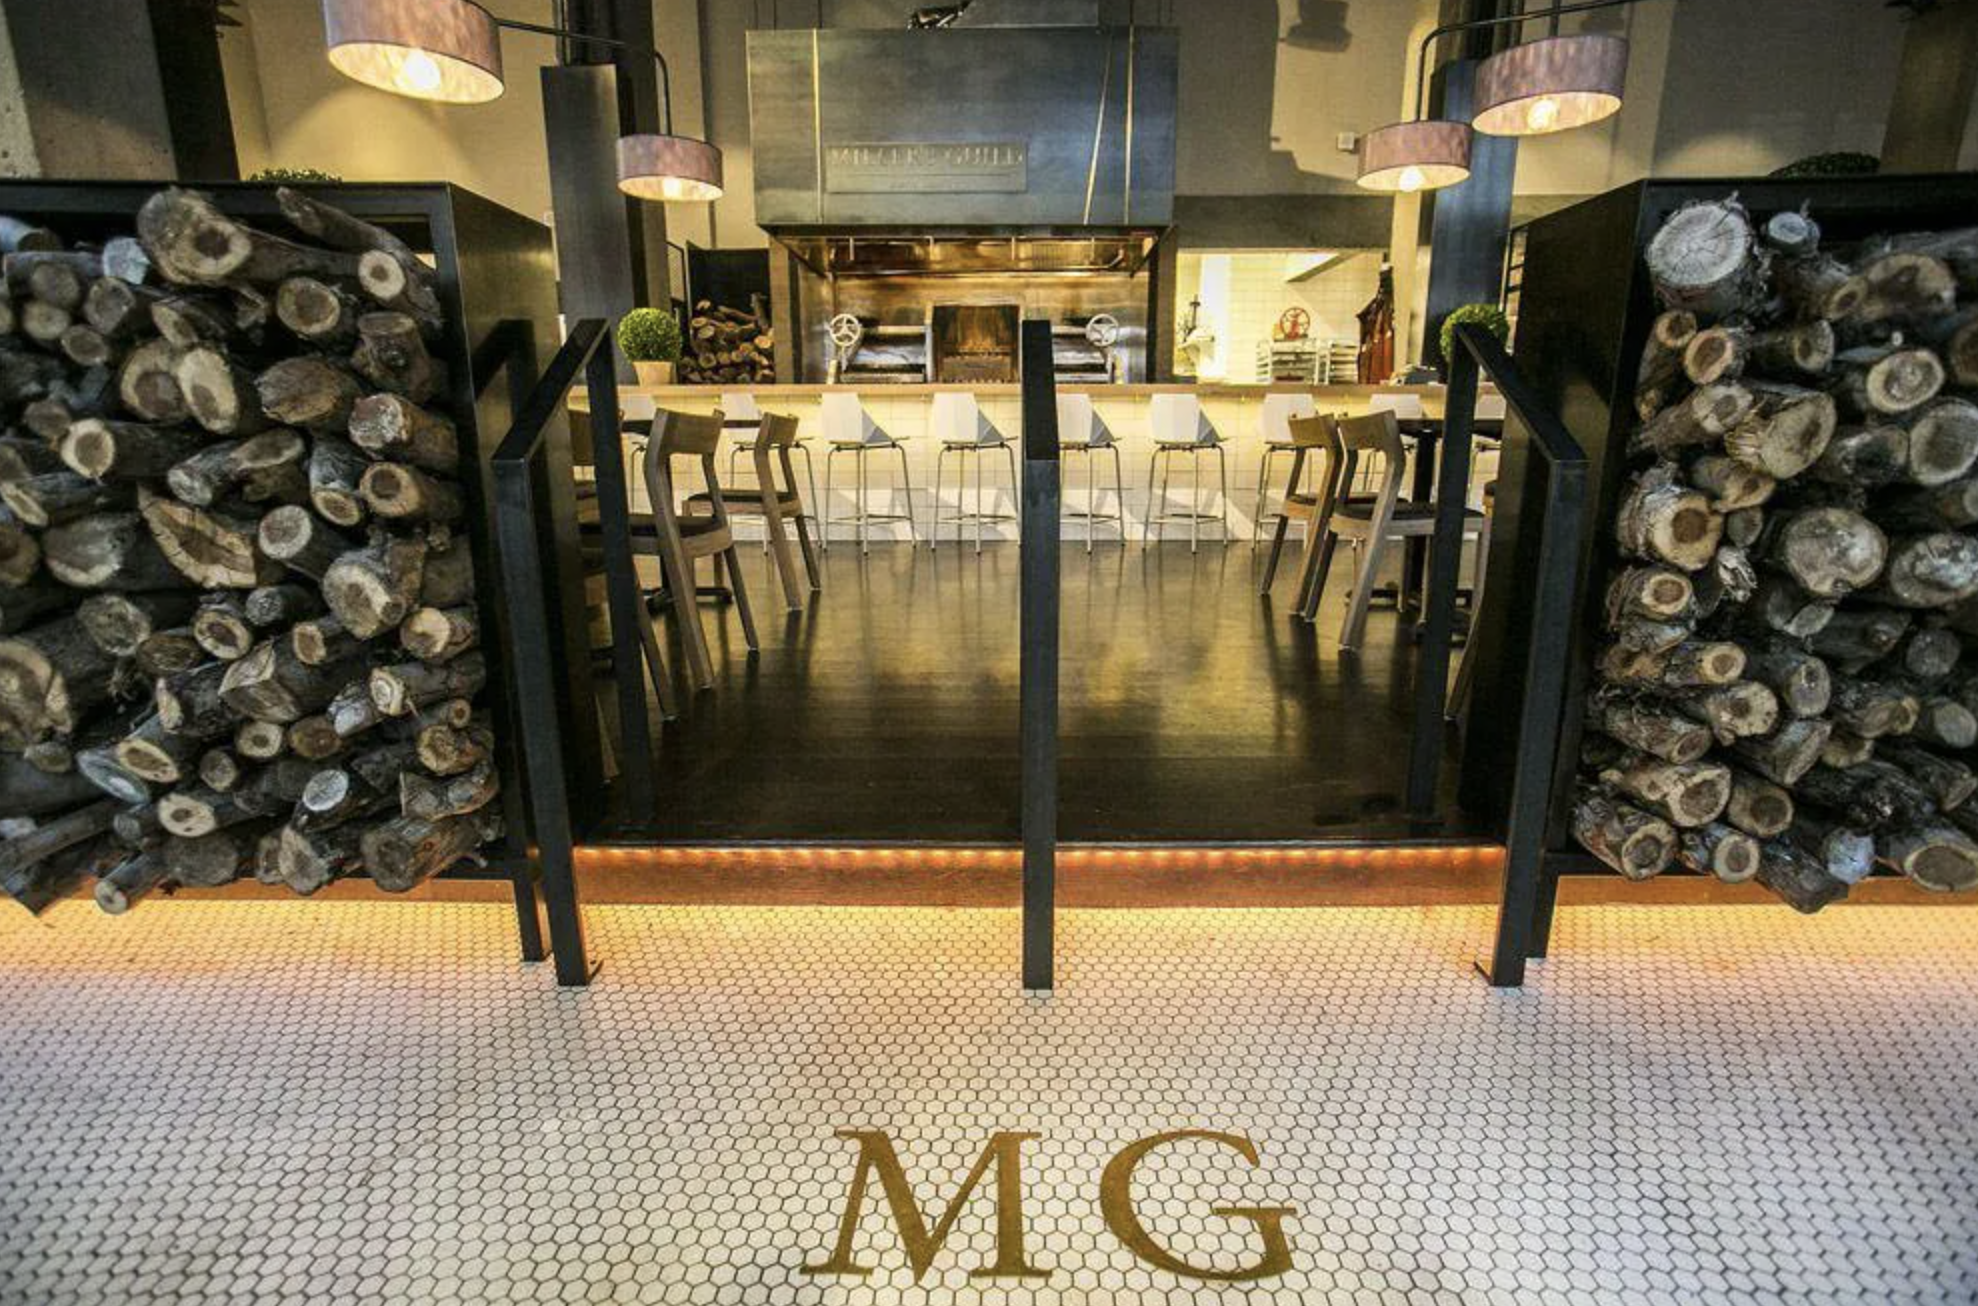 The interior of the Miller's Guild restaurant, with a gleaming steel Infierno wood-fired grill at the center surrounded by a counter and stool, and framed by two piles of chopped wood in the foreground